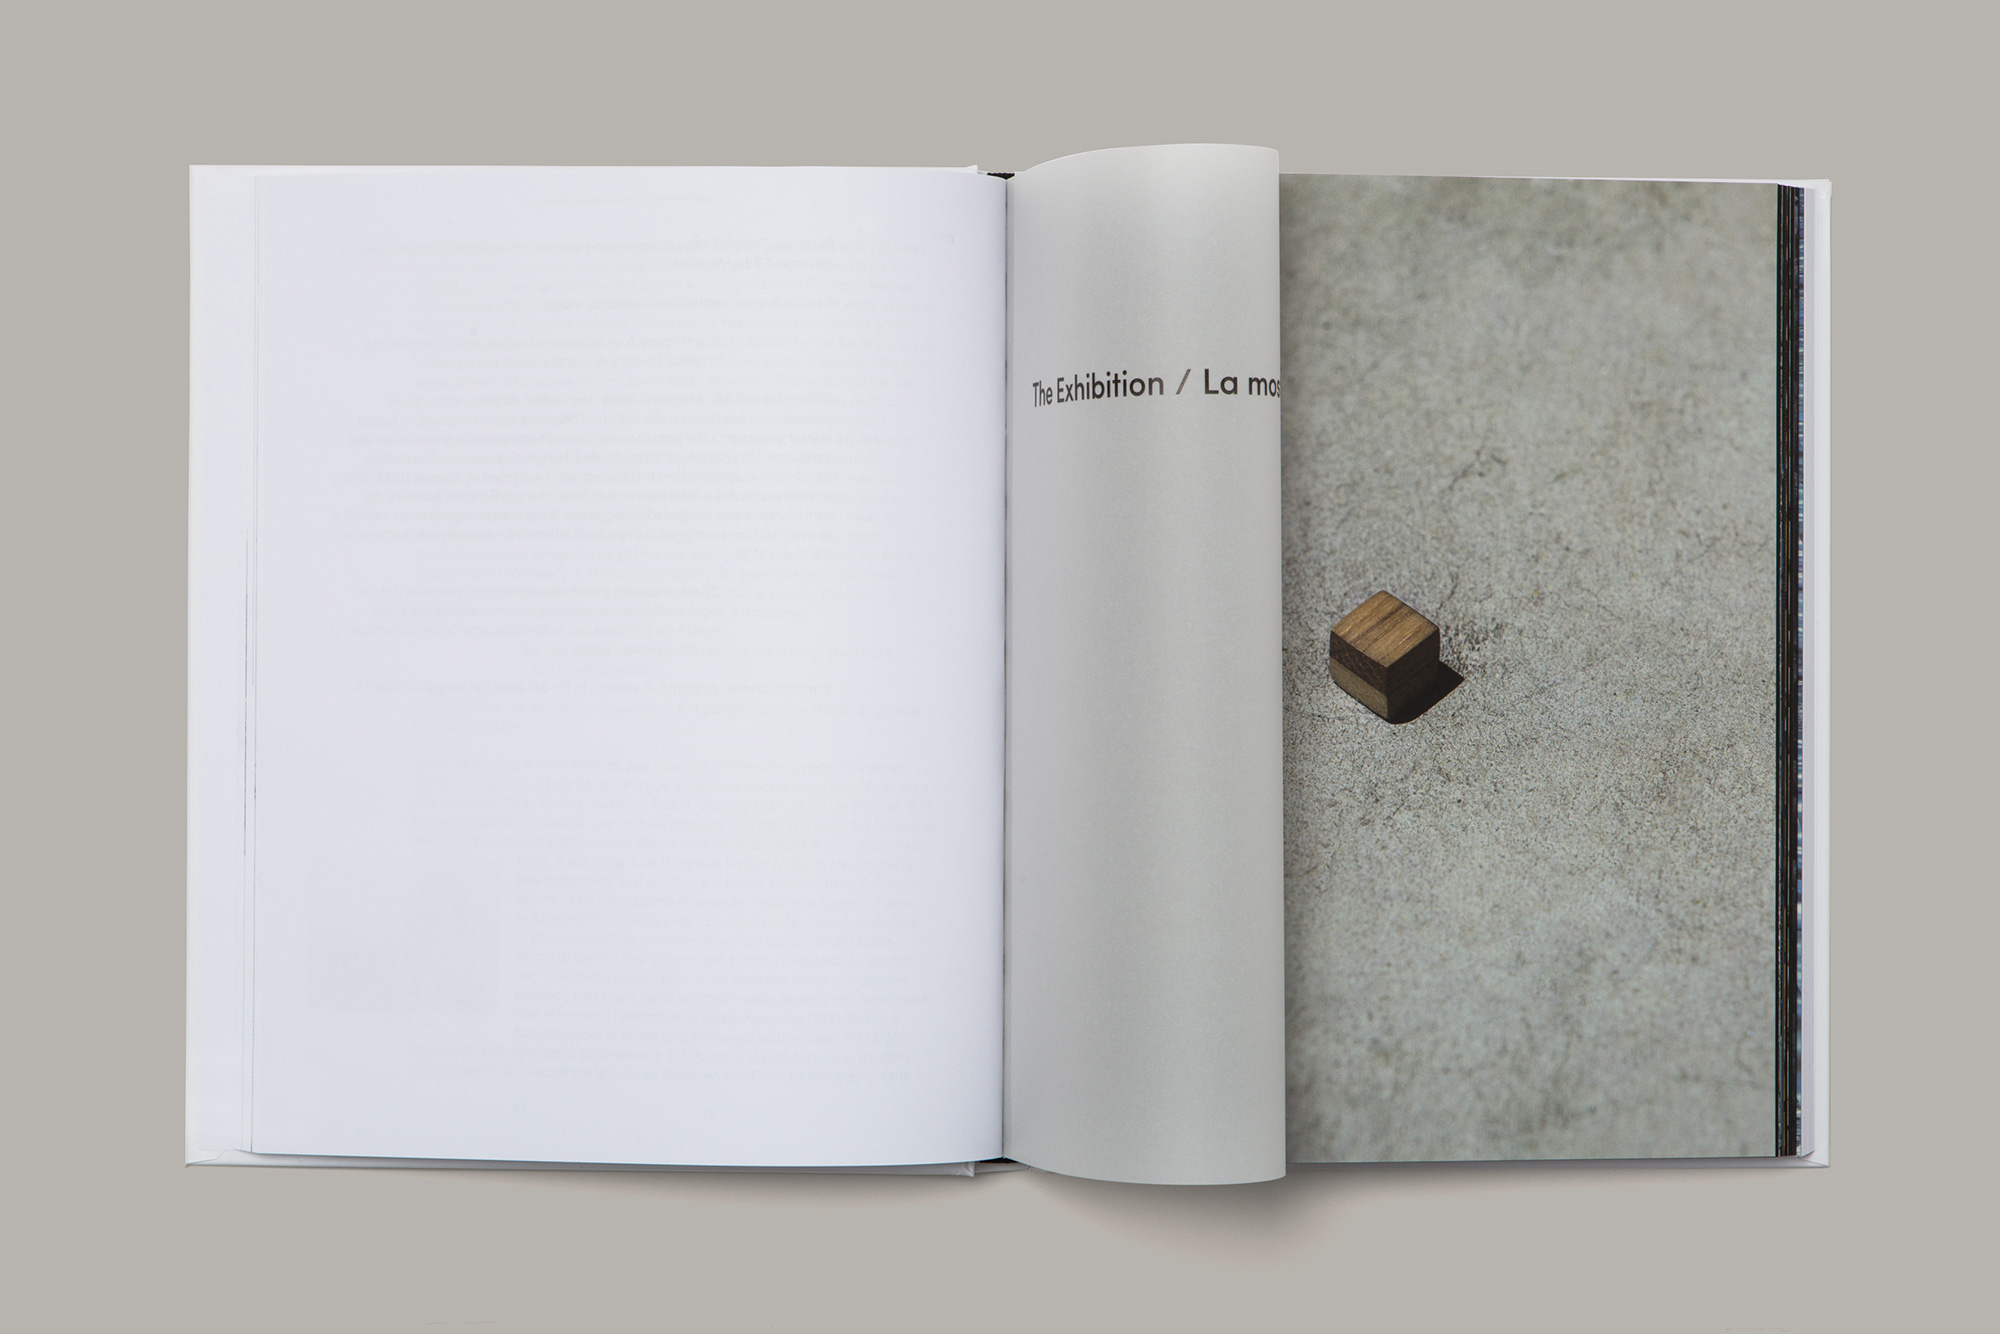 Giulia Dolci - Cildo Meireles Catalogue